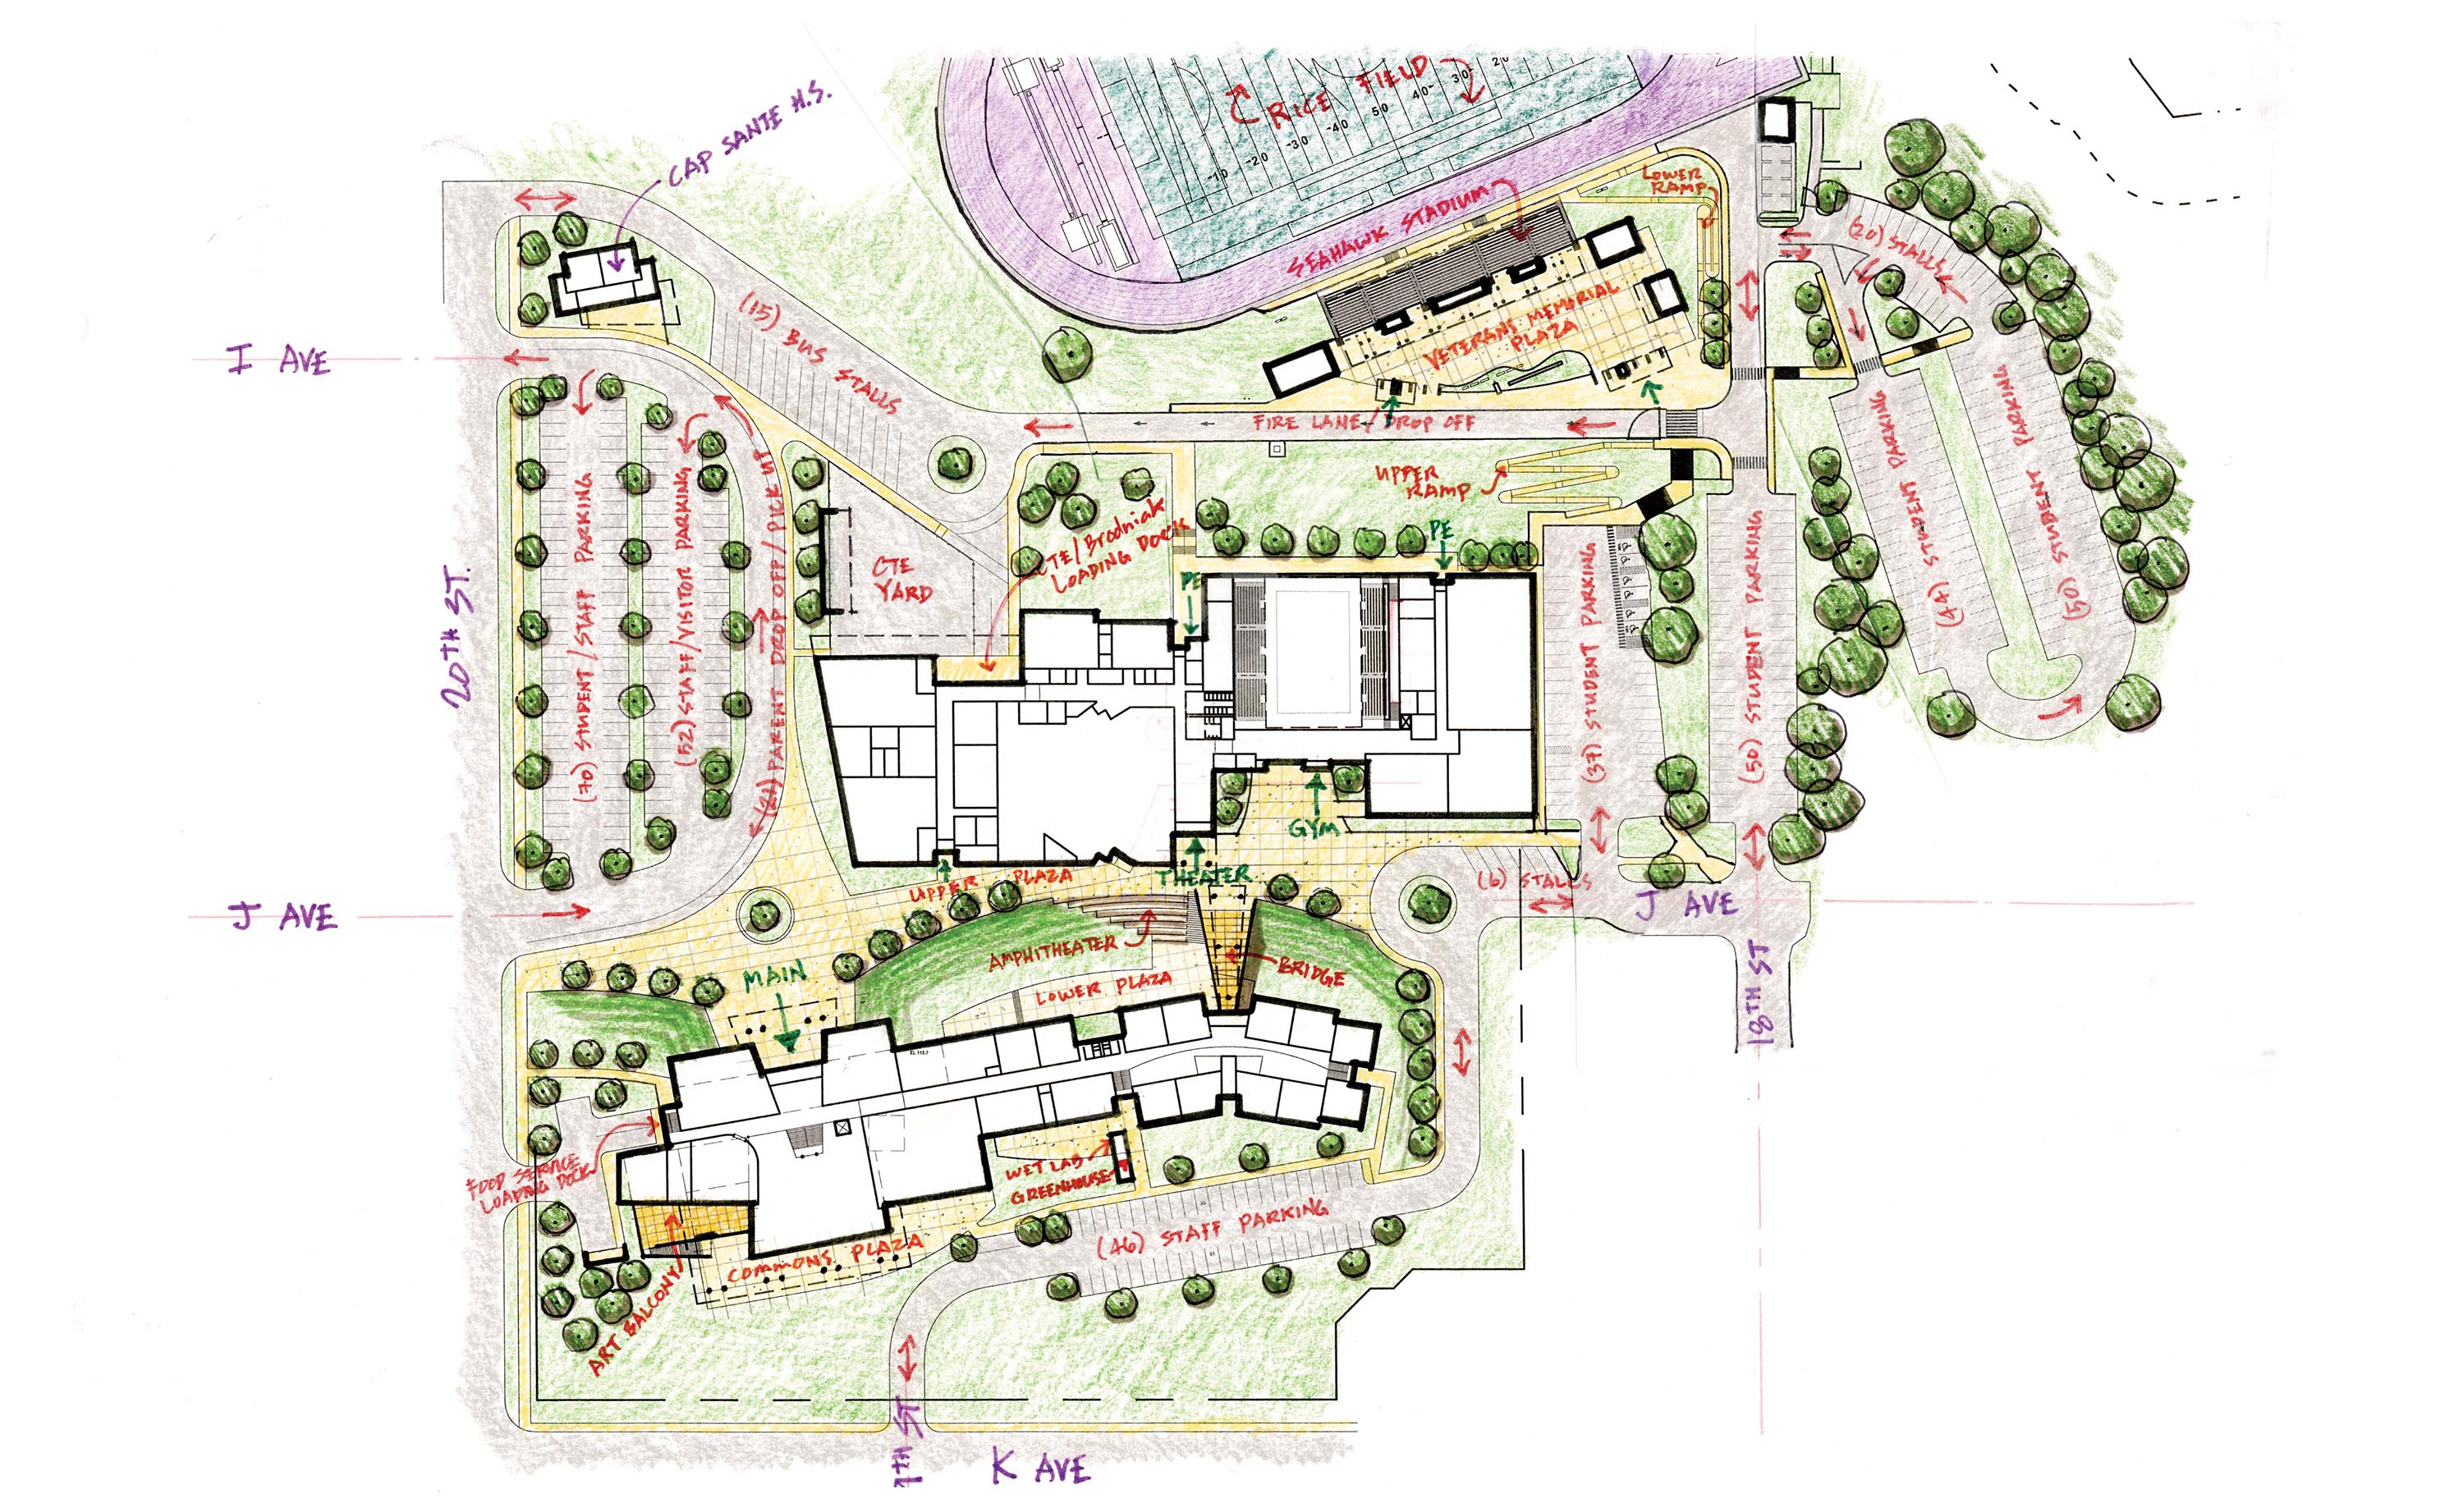 Detailed blueprint of what the future campus will look like from an aerial perspective.